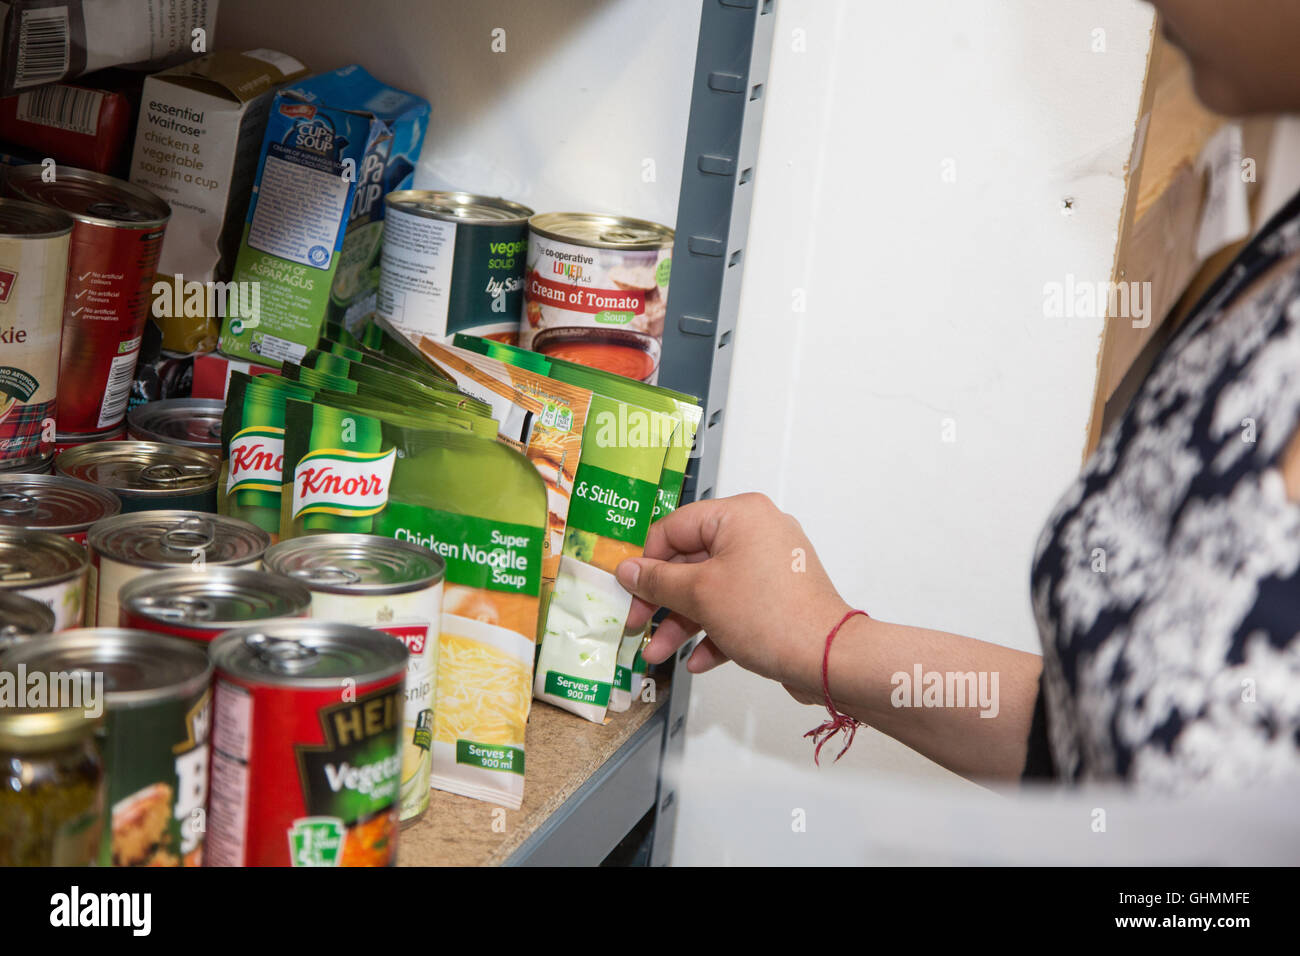 A woman's hand reaches in to collect or stock a shelf at North Paddington foodbank. - Stock Image